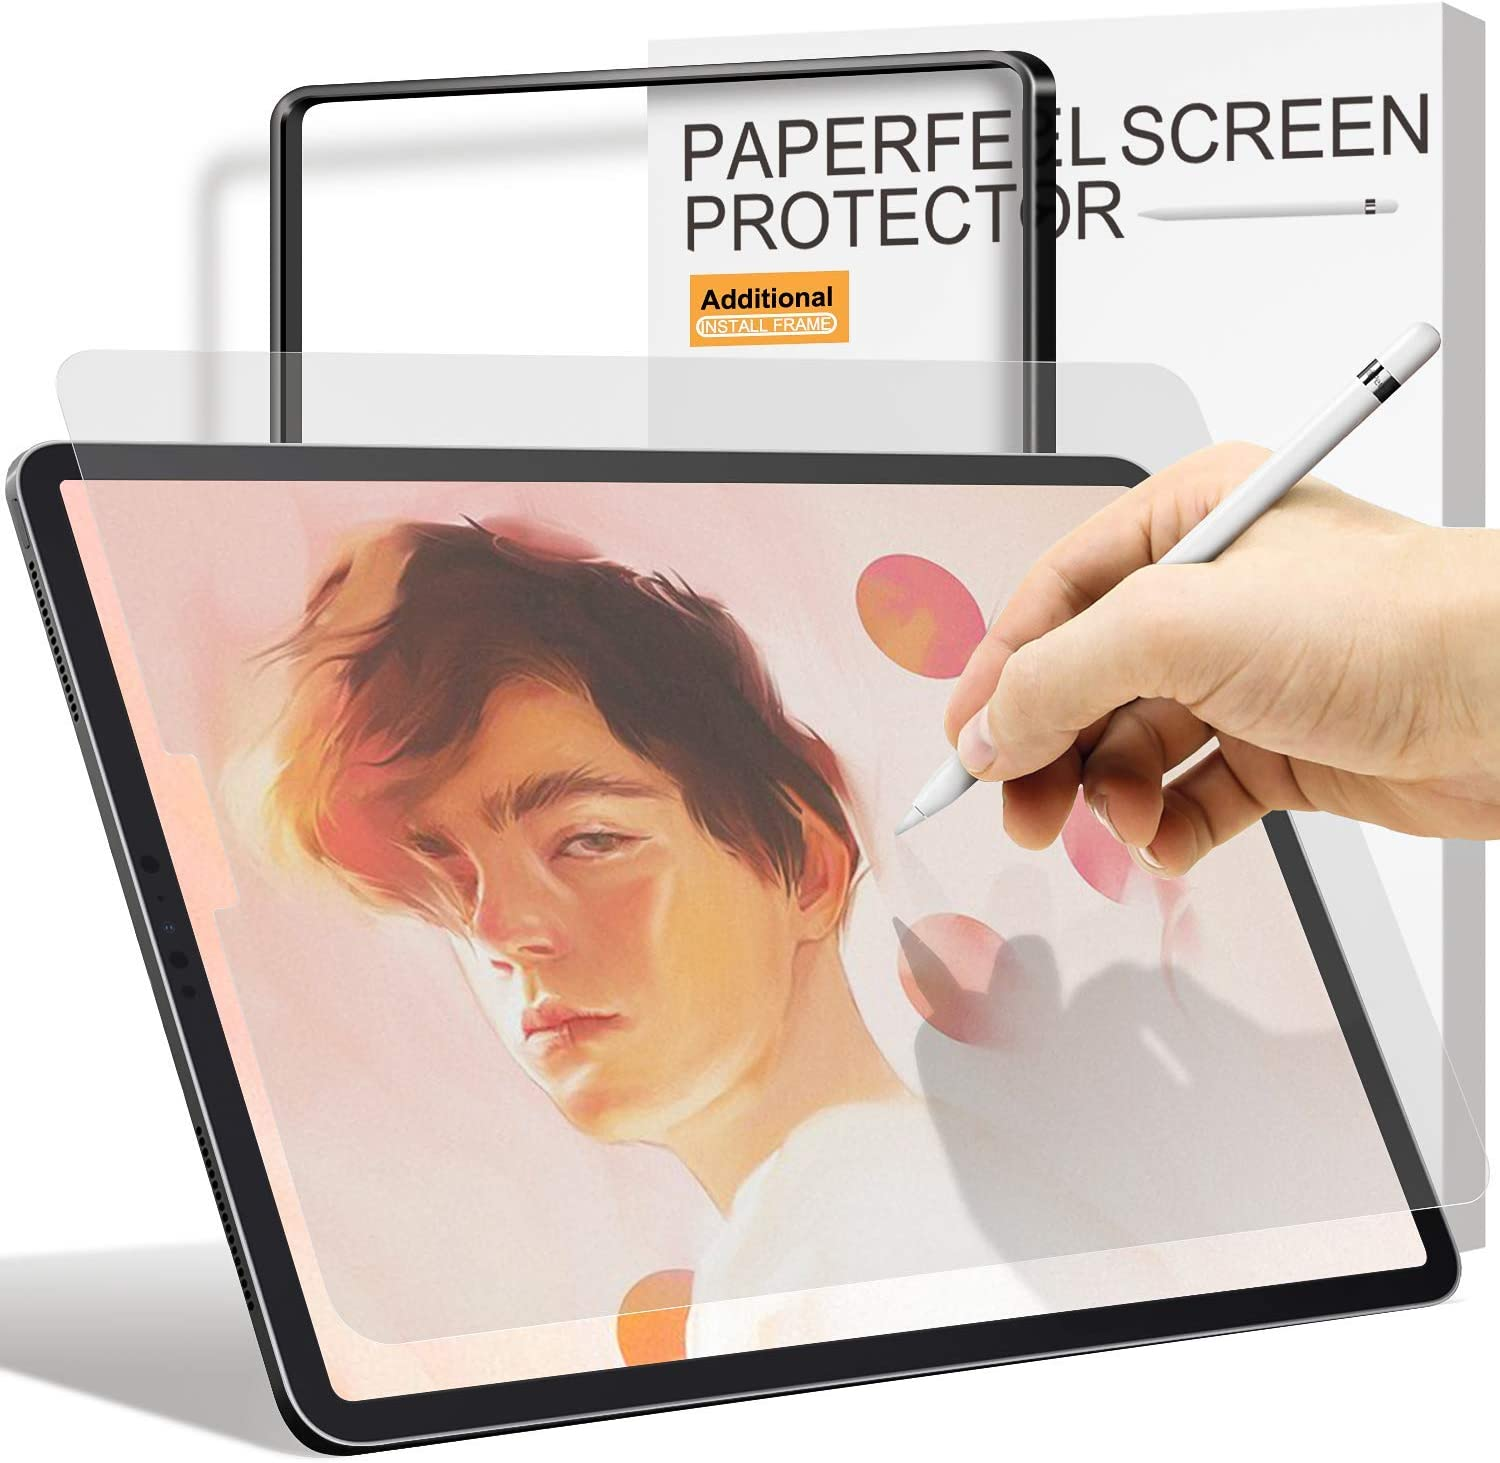 Paperfeel Screen Protector For iPad Air 4 2020 /iPad Pro 11 2020 & 2018, [Install Frame] ambison High Touch Sensitivity Paperfeel iPad Pro 11/10.9 inch Matte Screen Protector, Anti-Glare, Anti-Fingerprint, Apple Pencil Compatible